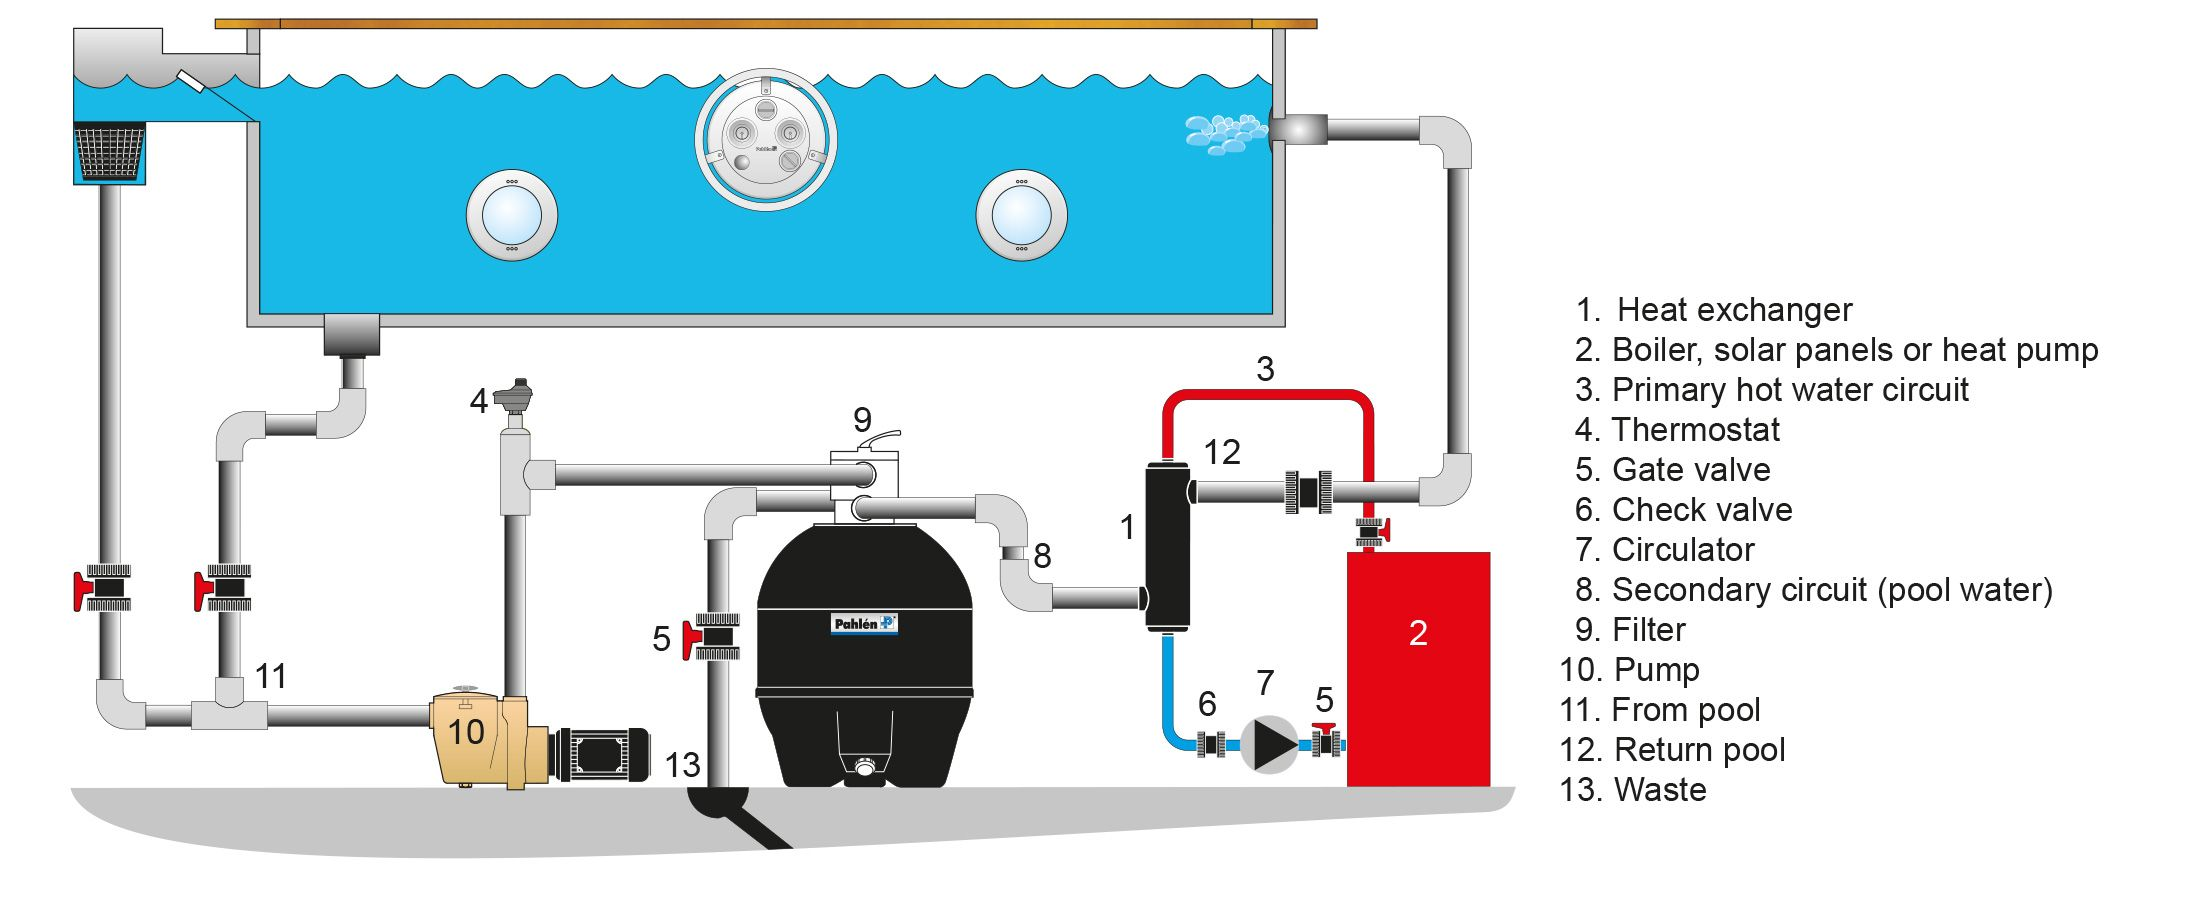 Swimming Pool Schematic Heat Exchanger Electric Heater Heat Pump Heat Pump Swimming Pool Electrical Swimming Pools